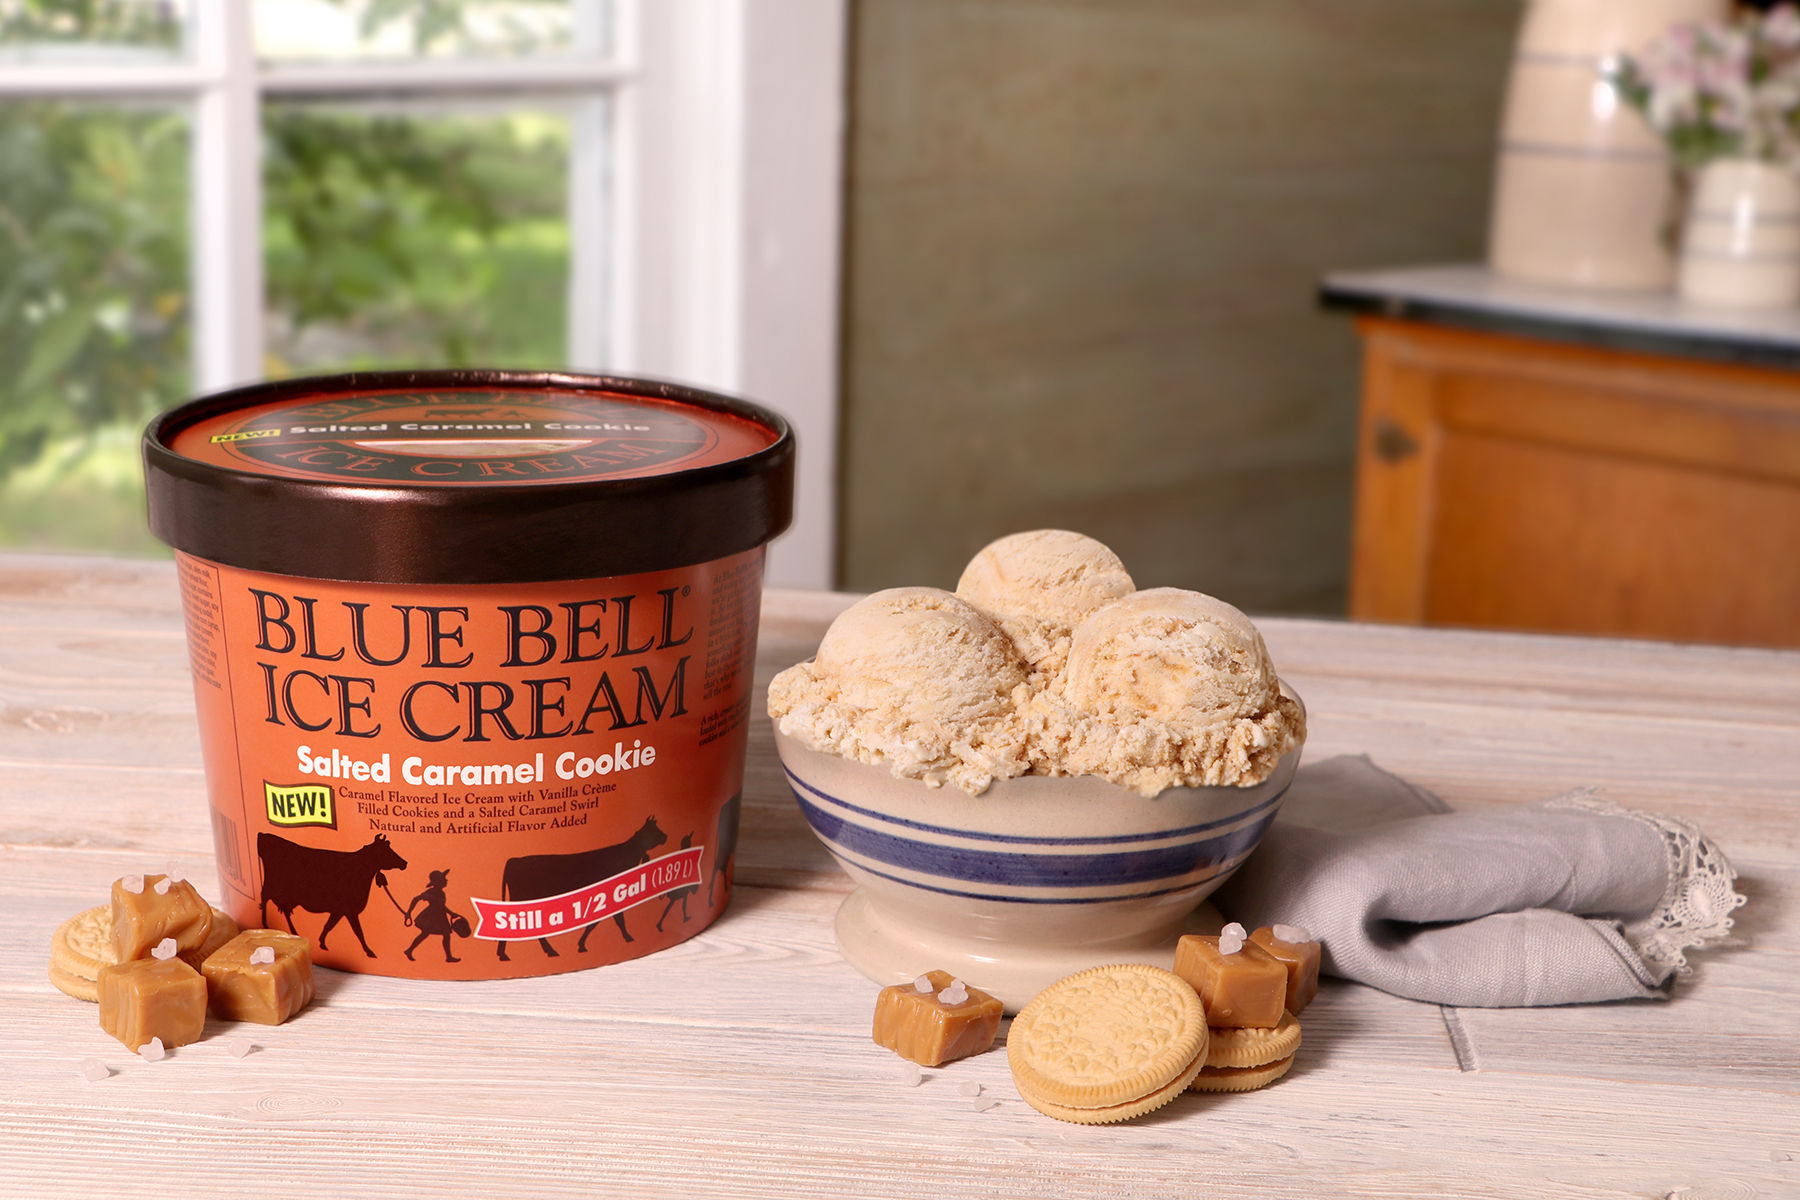 Blue Bell Ice Cream Salted Caramel Cookie